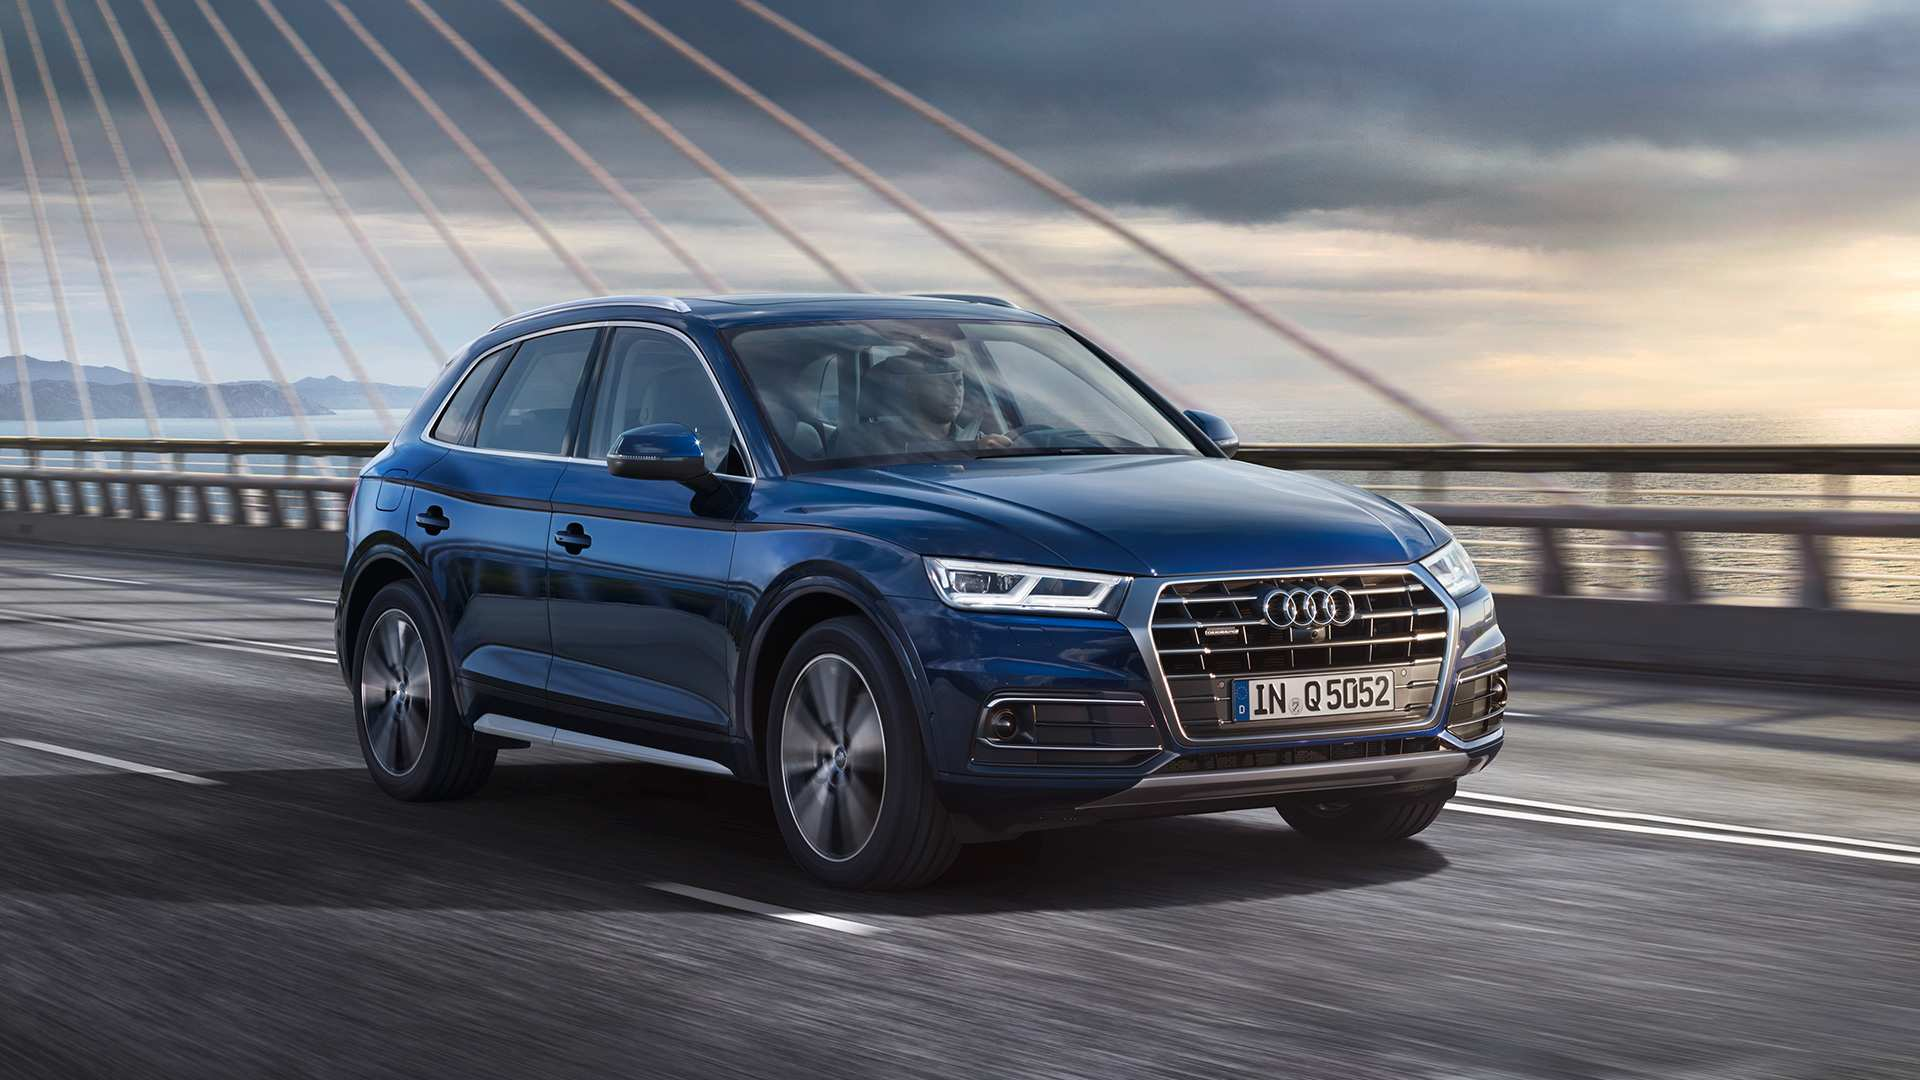 14 All New 2019 Audi Q5 Review And Release Date